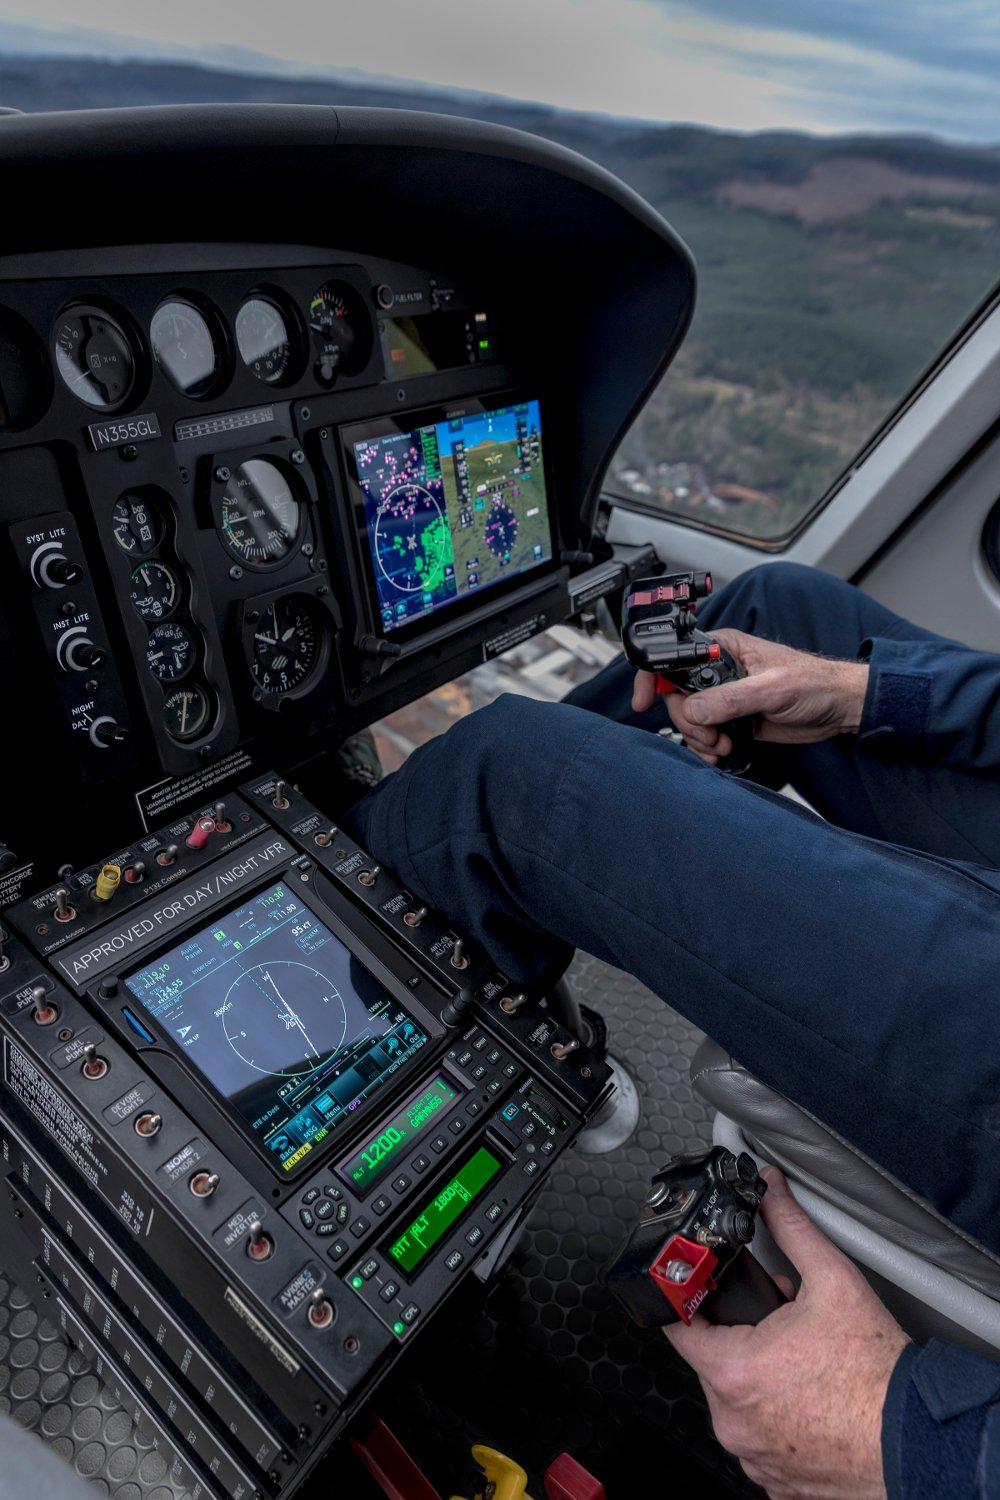 The GFC 600H can operate as a standalone flight control system or integrated with compatible flight displays like the Garmin G500H and G500H TXi. Source: Garmin